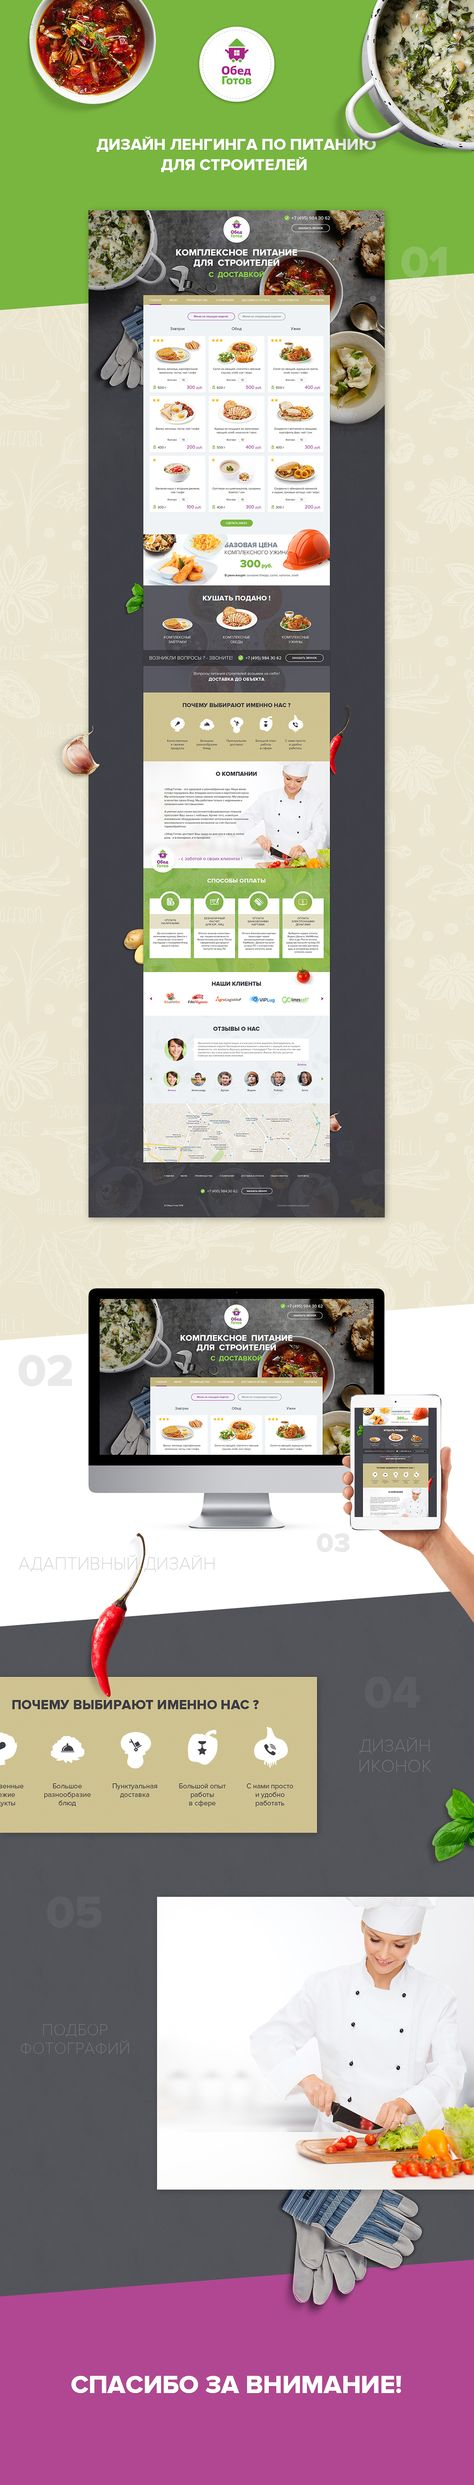 Design of Landing Page for Lunch is ready